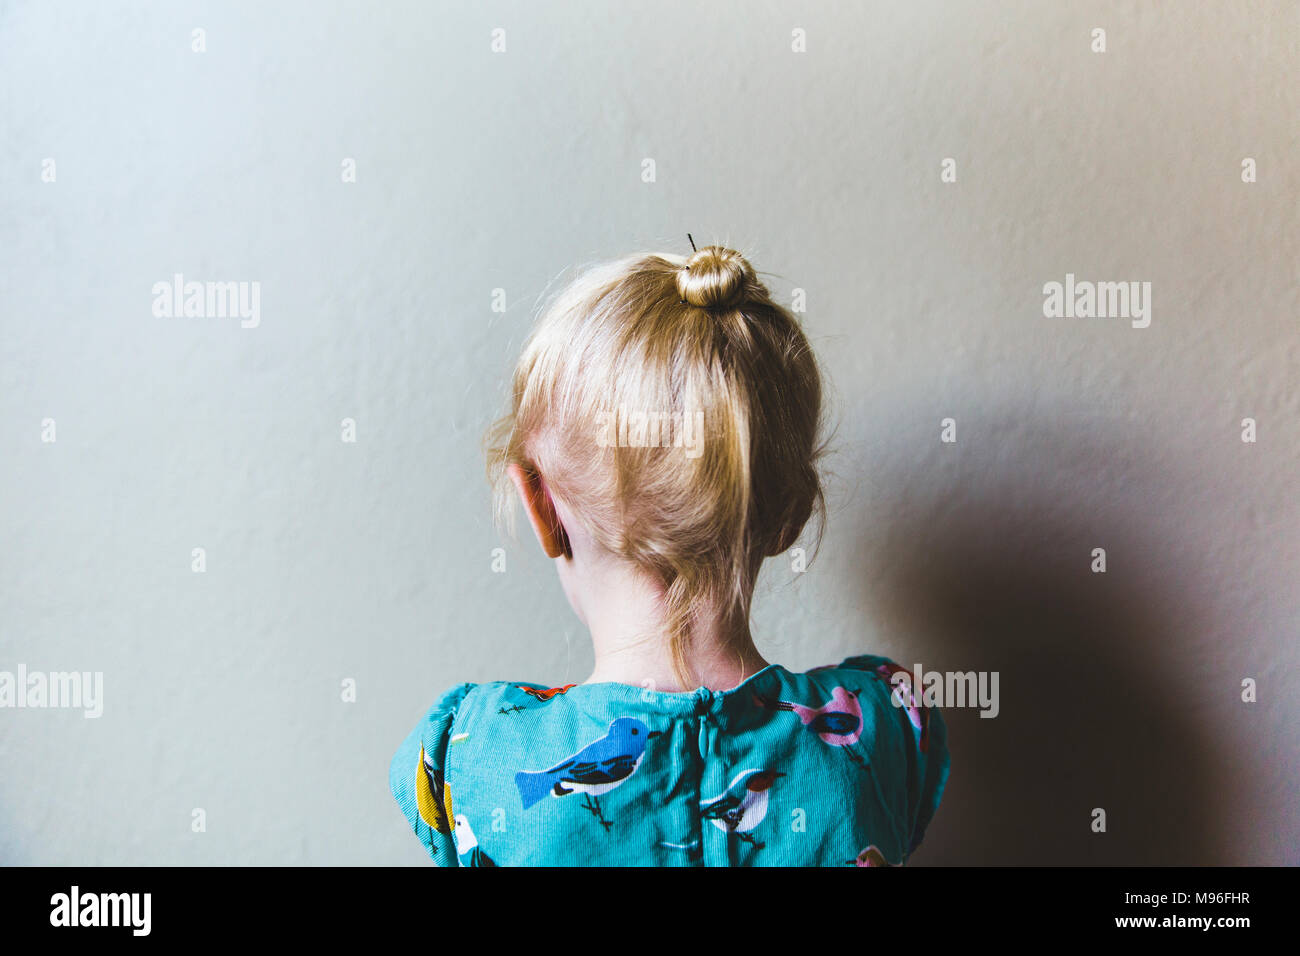 Back of girl's head - Stock Image